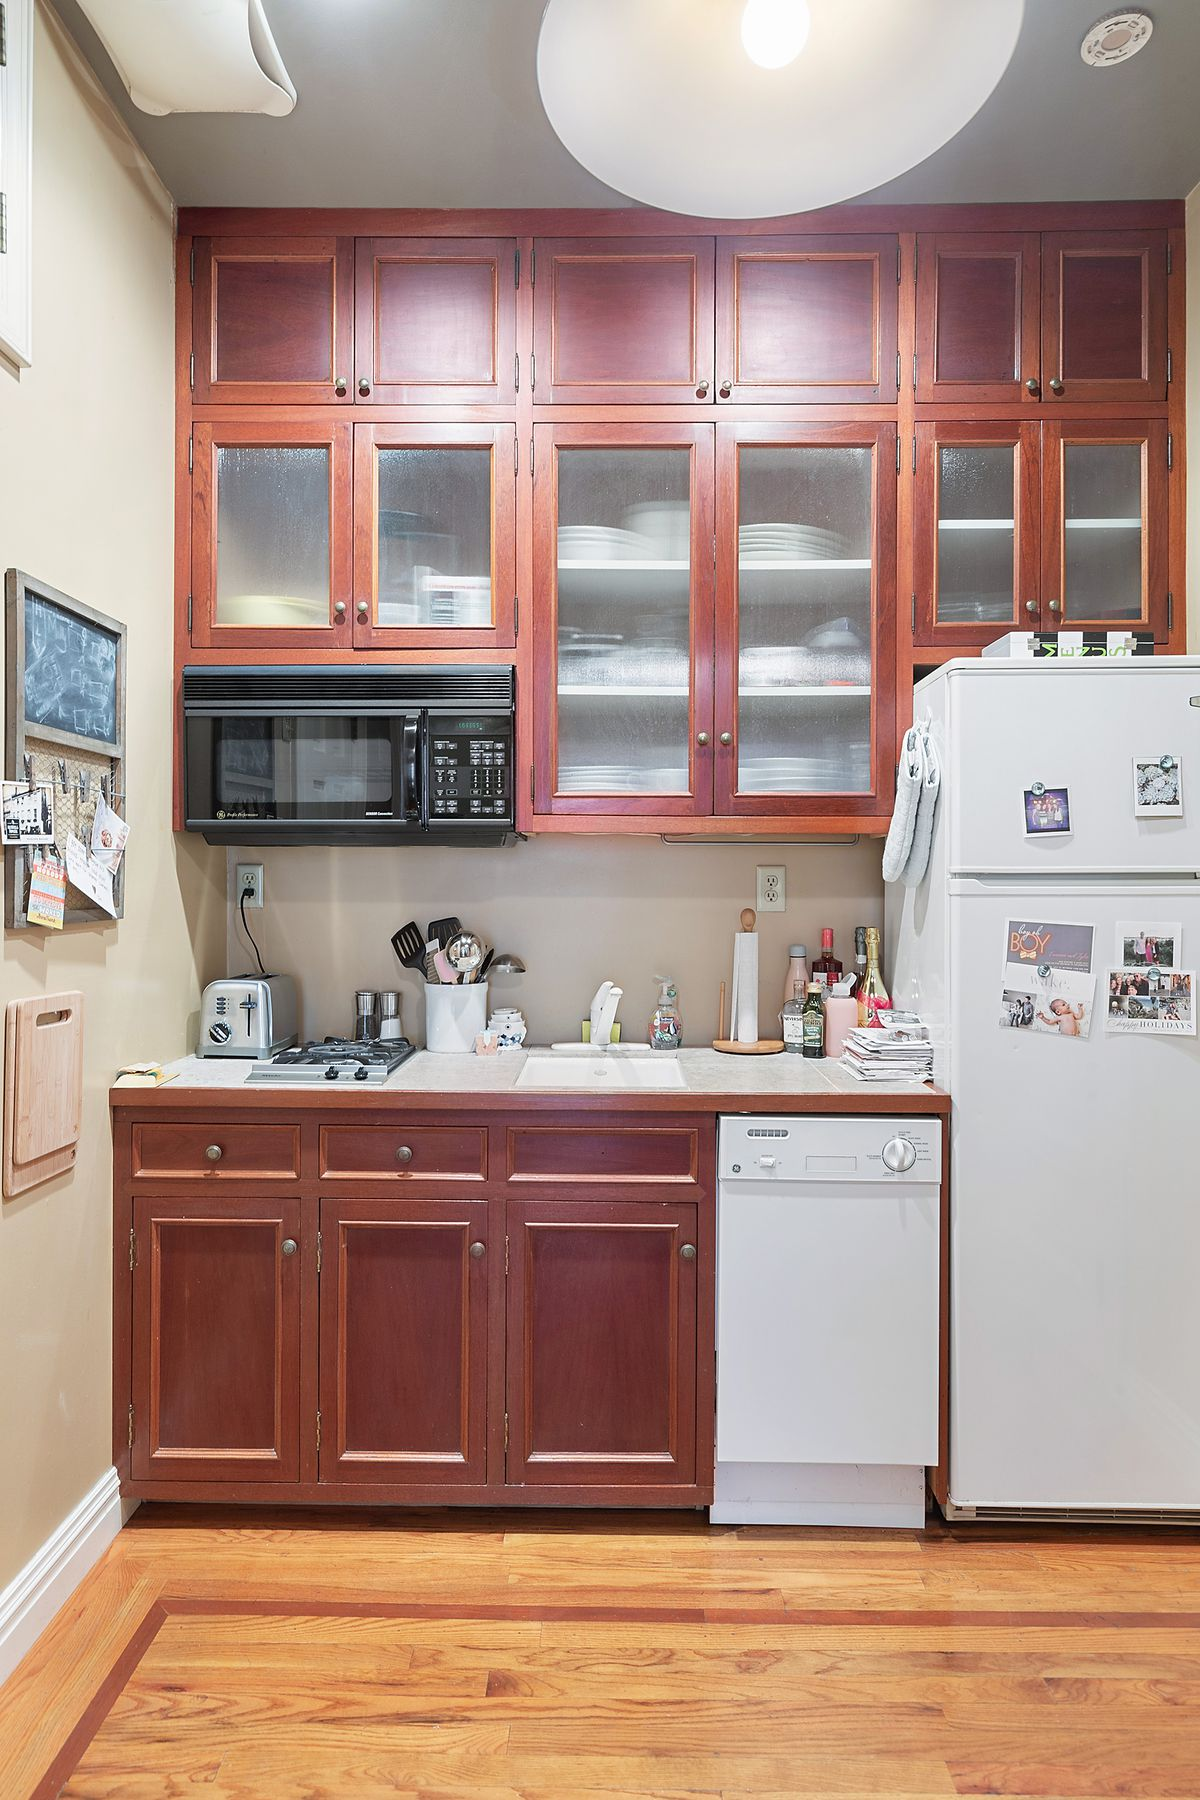 A kitchen with hardwood floors and wood cabinetry.